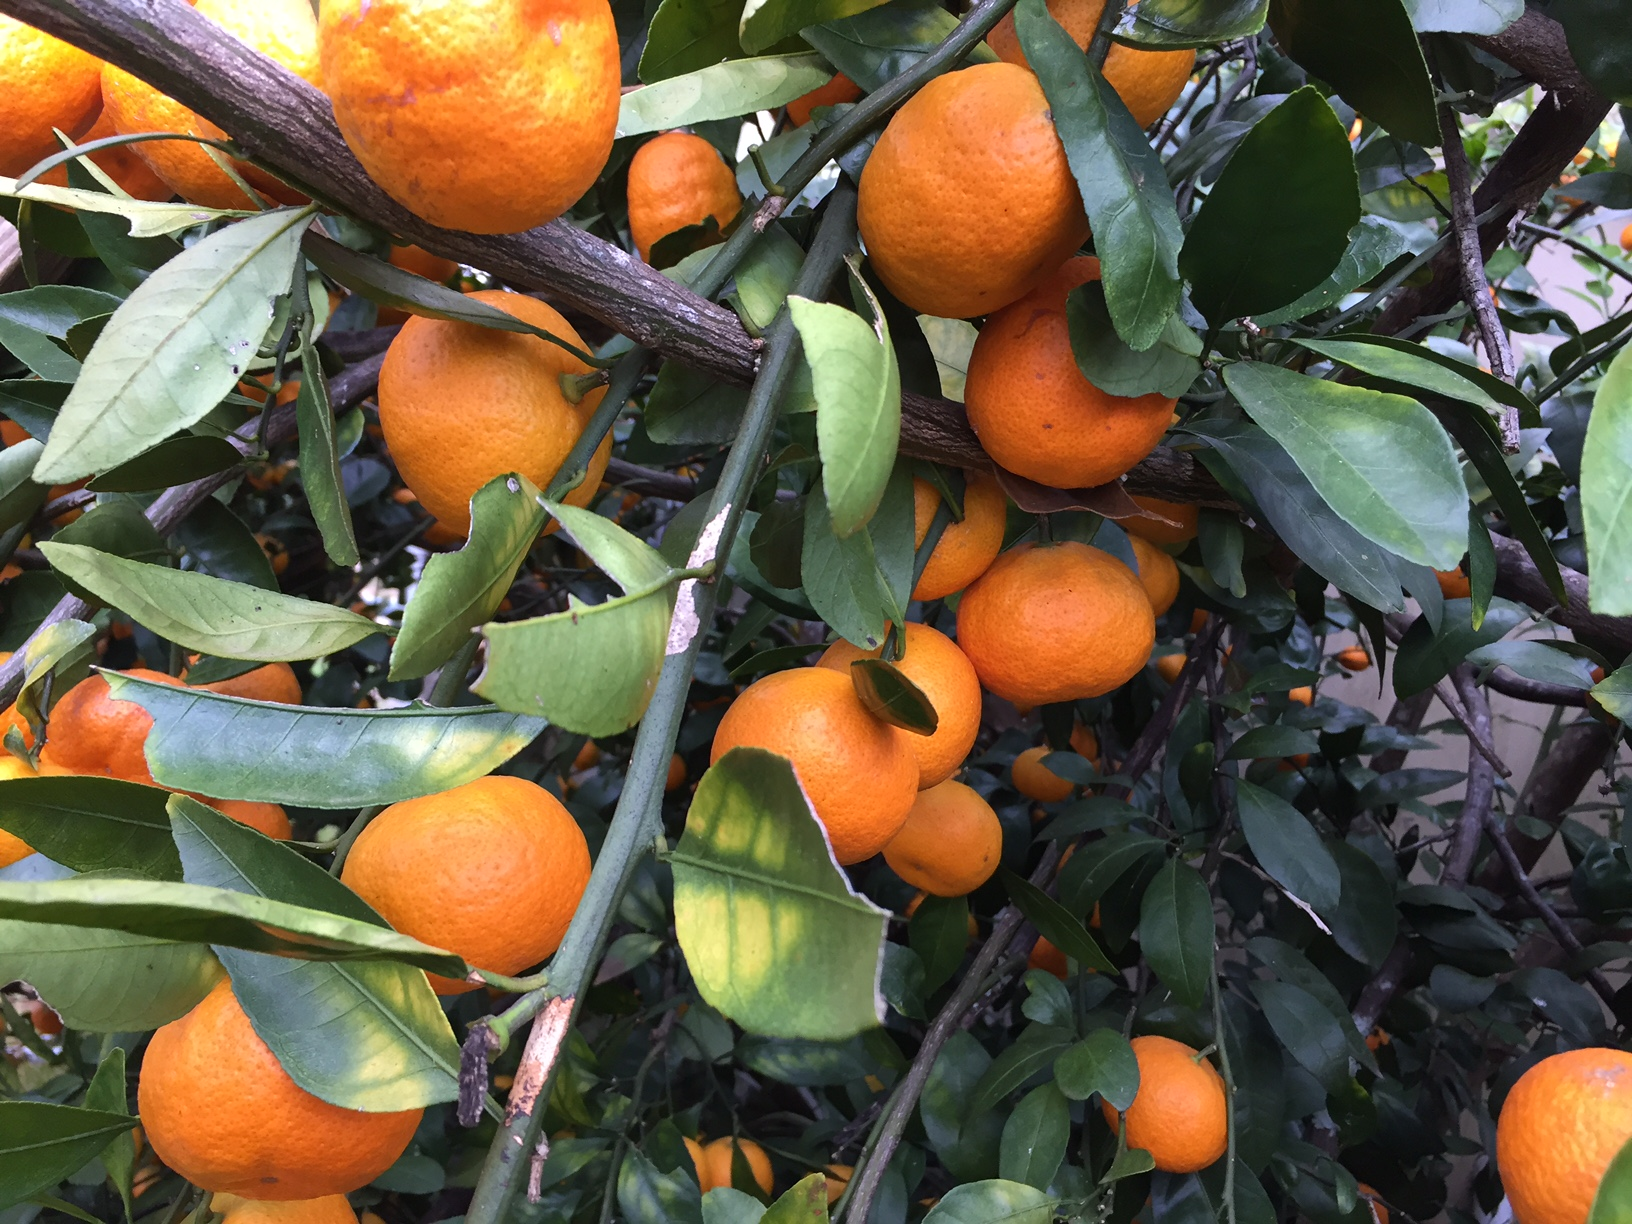 Late Winter Citrus Management Considerations